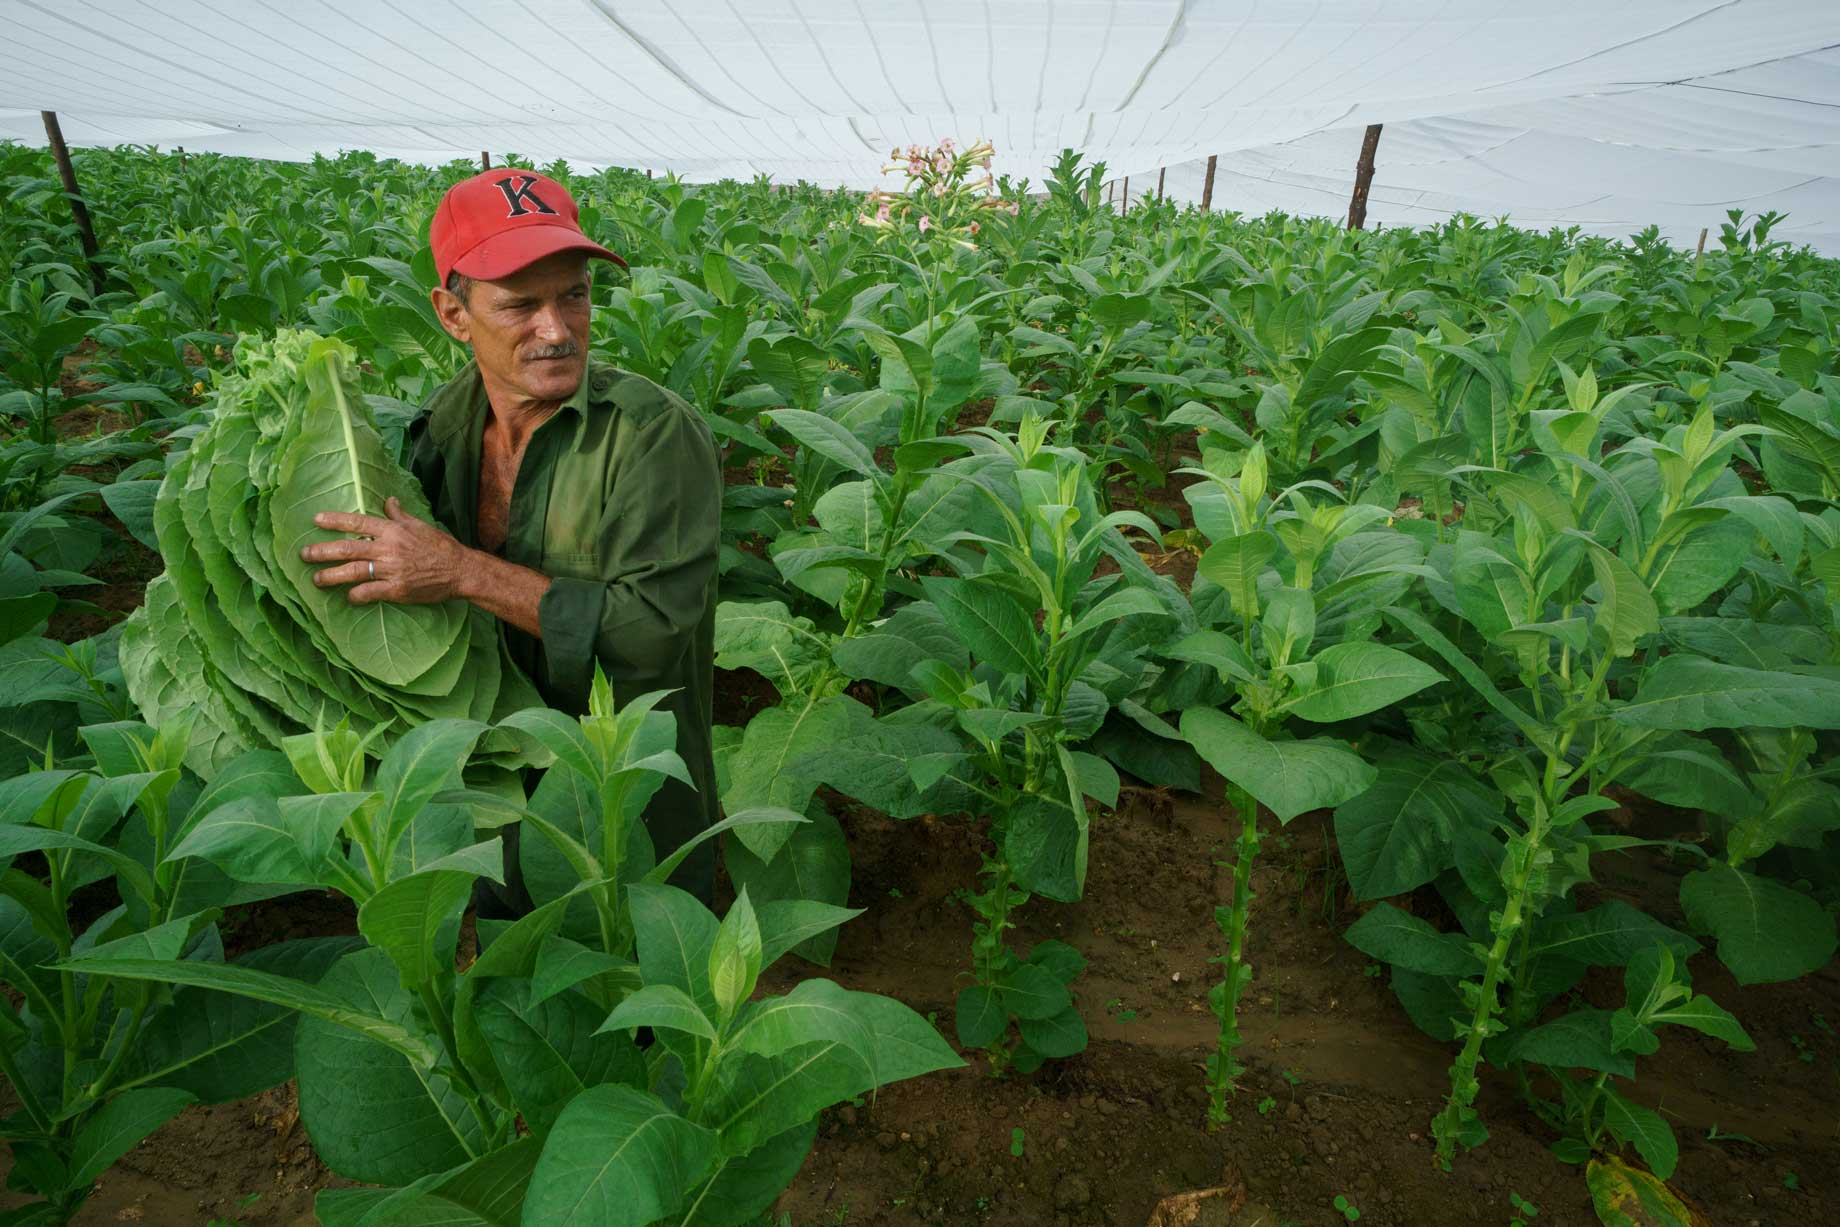 Cuban Tobacco Worker In The Fields | Stories + Objects Luxury Lifestyle Magazine